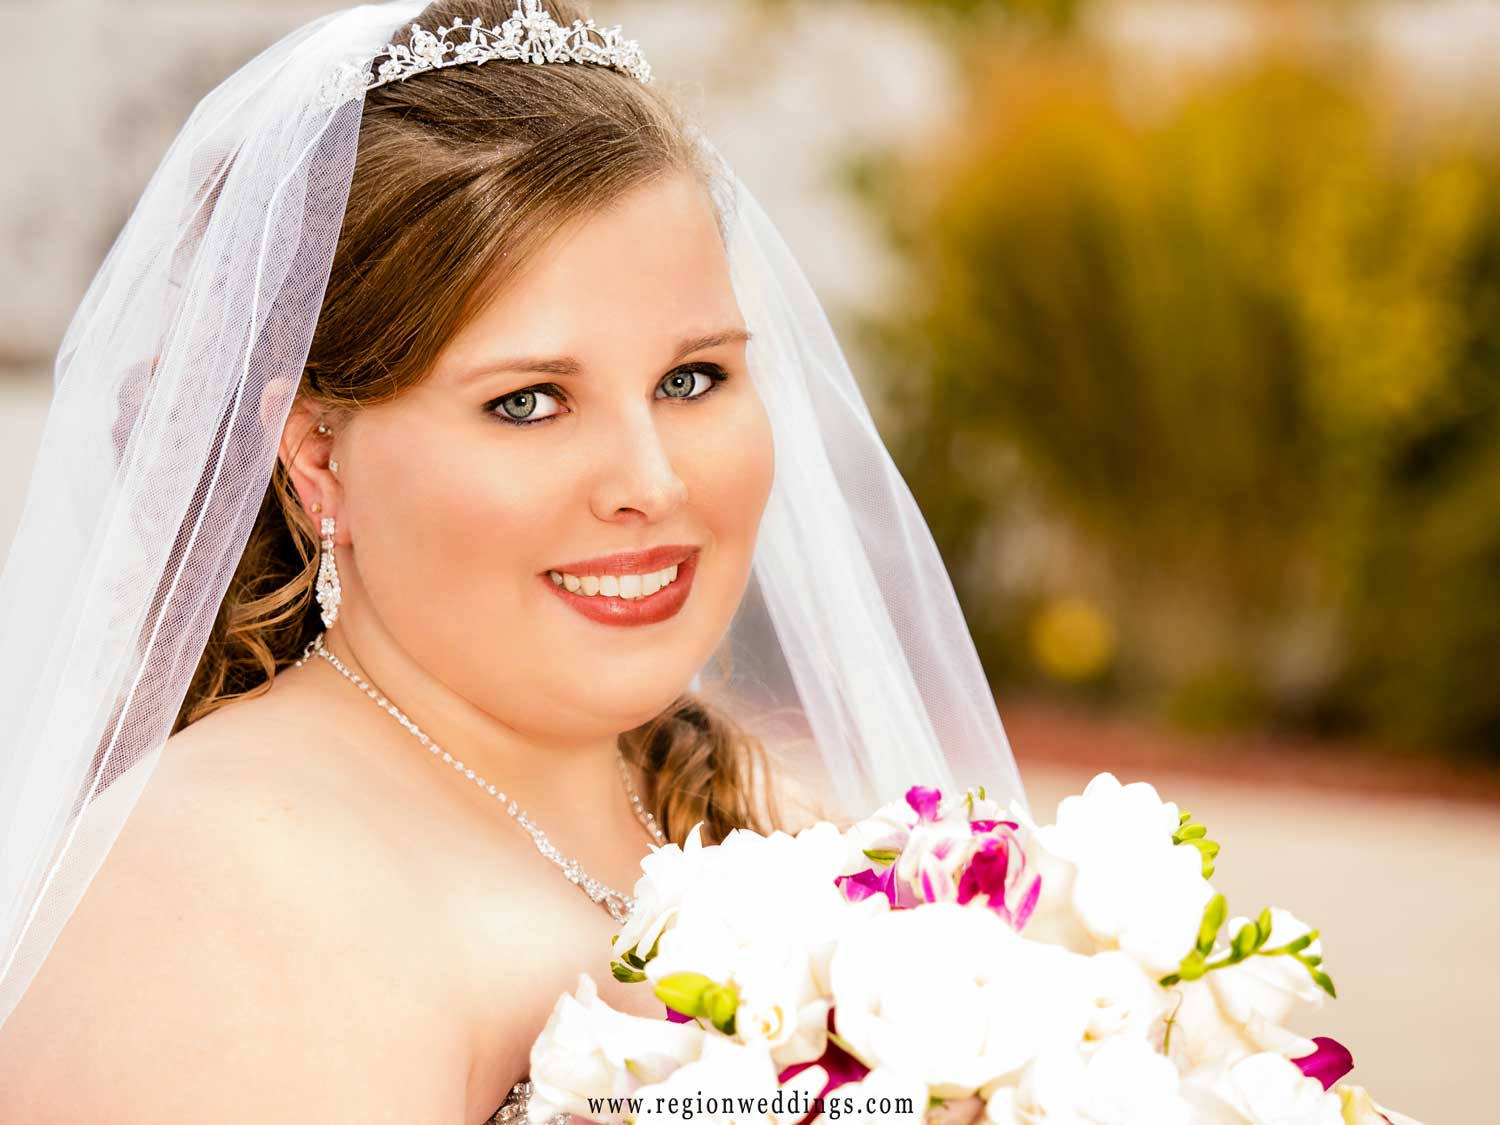 The bride just before her Fall wedding ceremony.